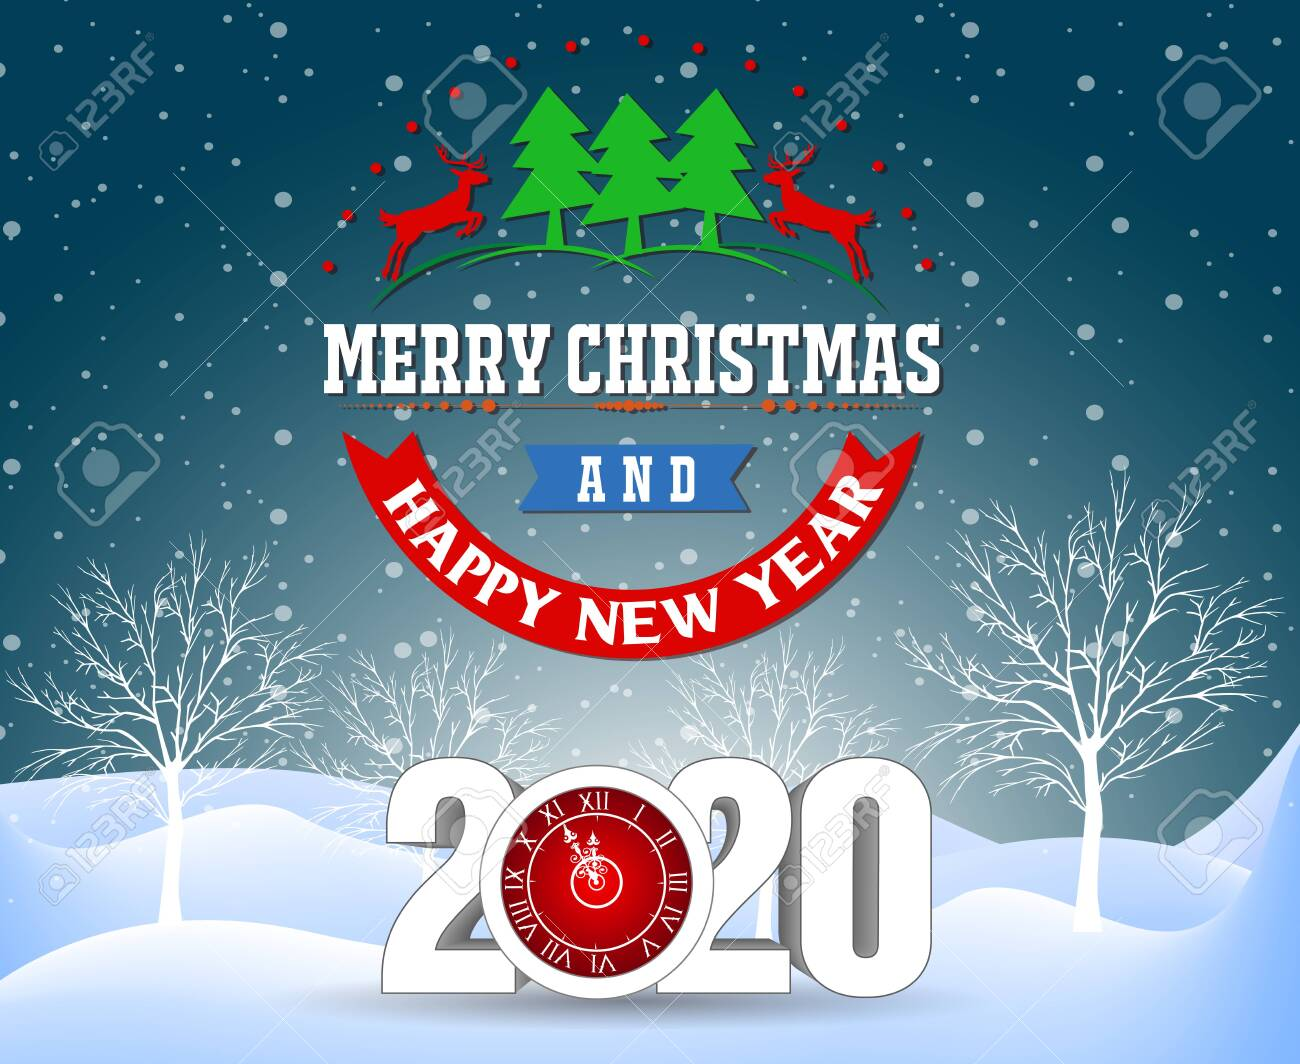 Merry Christmas Images 2020.Merry Christmas And Happy New Year 2020